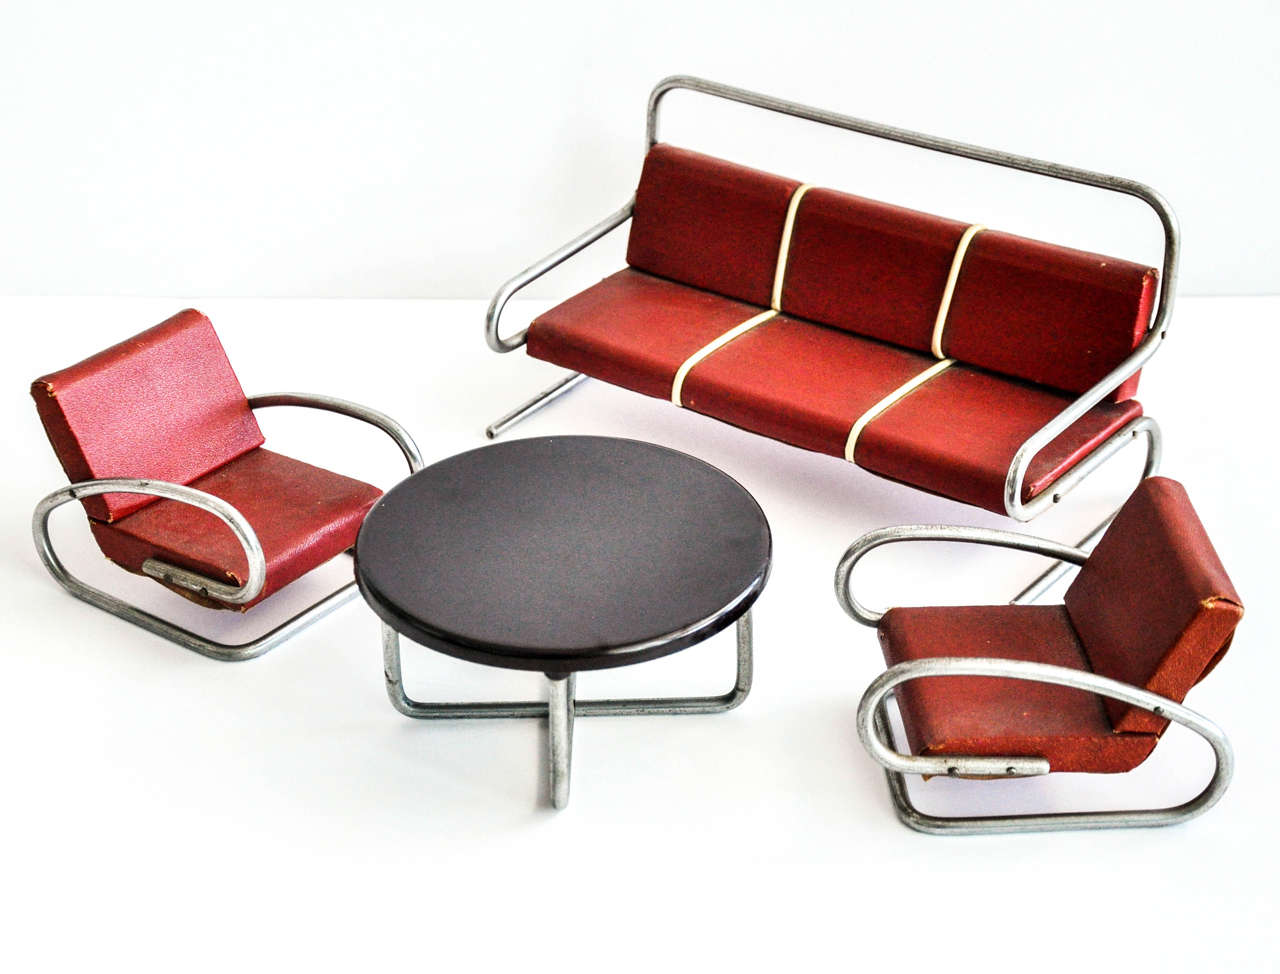 A four-piece set of miniature tubular furniture attributed to the Czech designer Jindrich Halabala (1903-1973). Halabala was a modernist Czech furniture designer who created functional, modular and affordable furniture that is prized today by